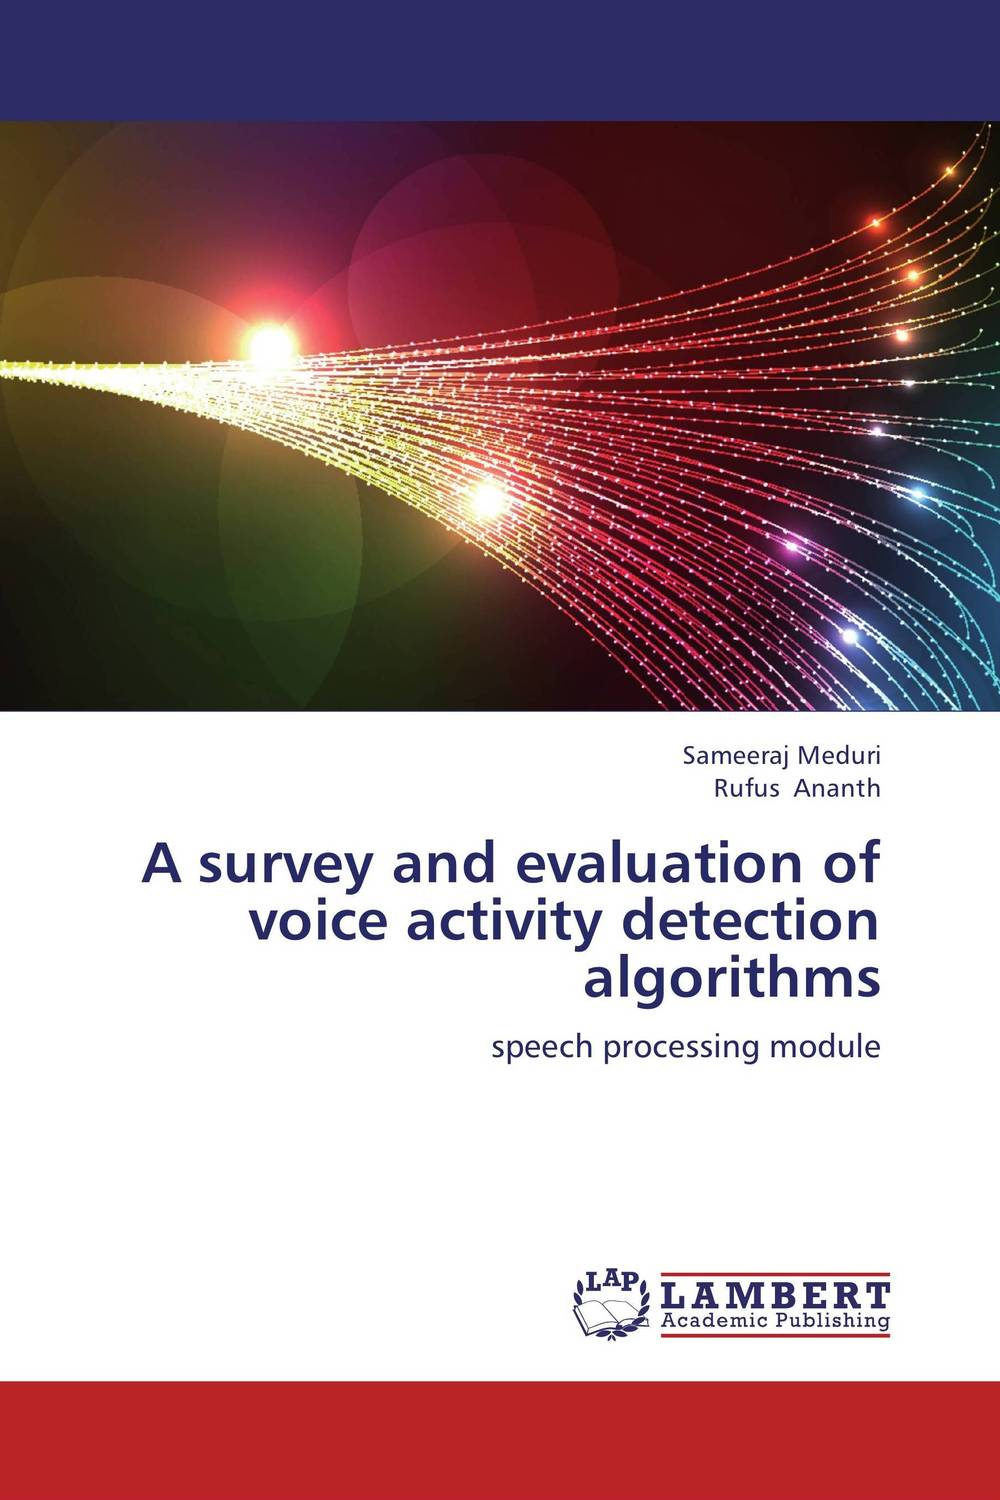 A survey and evaluation of voice activity detection algorithms the role of evaluation as a mechanism for advancing principal practice